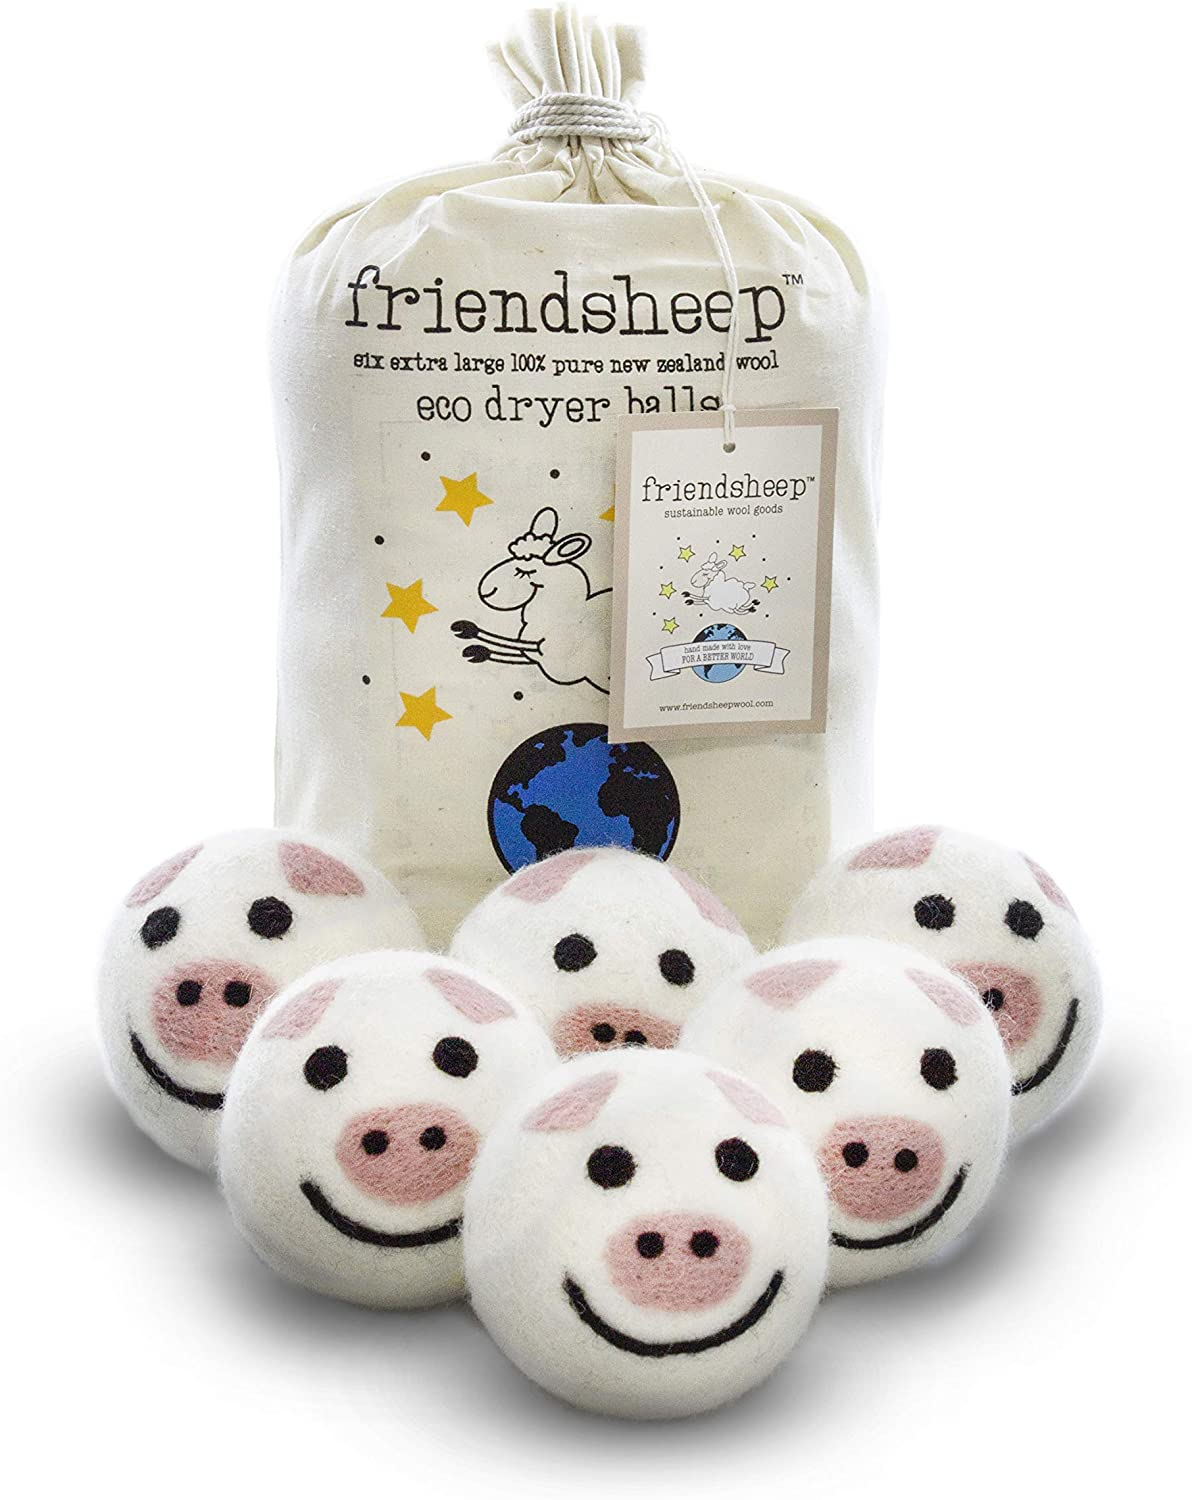 Friendsheep Wool Dryer Balls 6 Pack XL Organic Premium Reusable Cruelty Free Handmade Fair Trade No Lint Fabric Softener Pig - Piggy Band